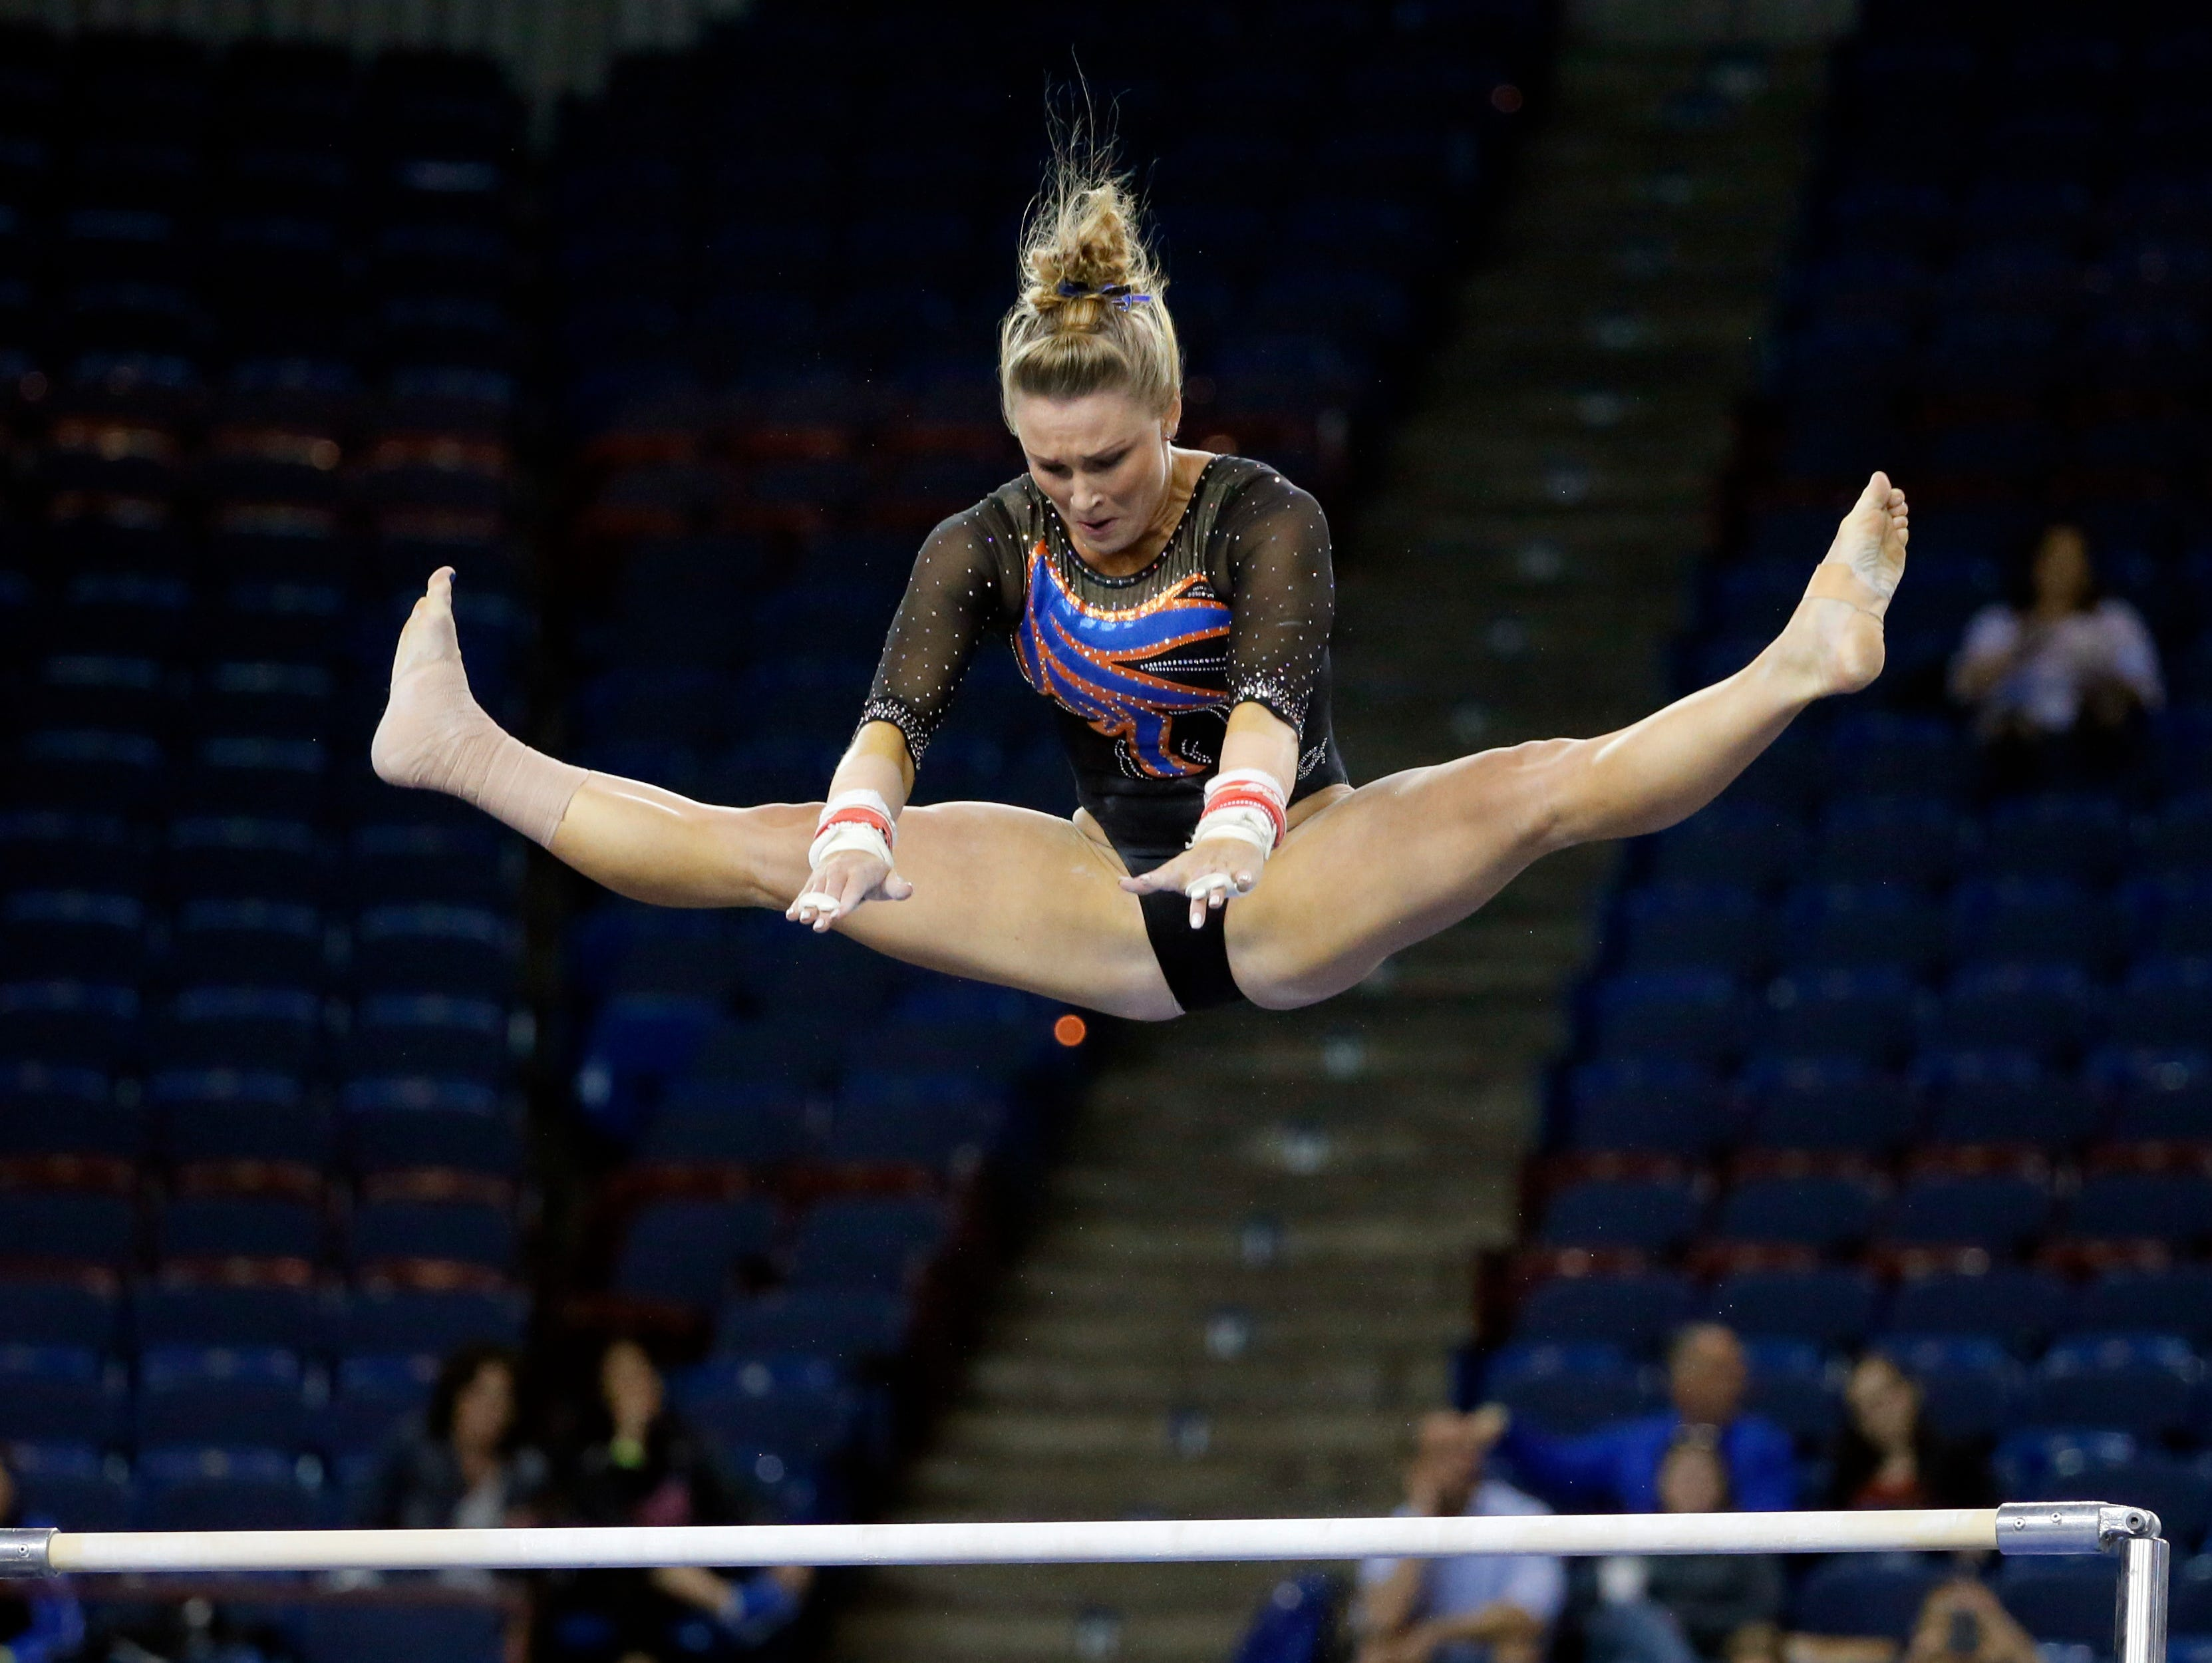 Florida's Bridget Sloan competes on the uneven parallel bars during the NCAA women's gymnastics championships Friday, April 15, 2016, in Fort Worth, Texas.